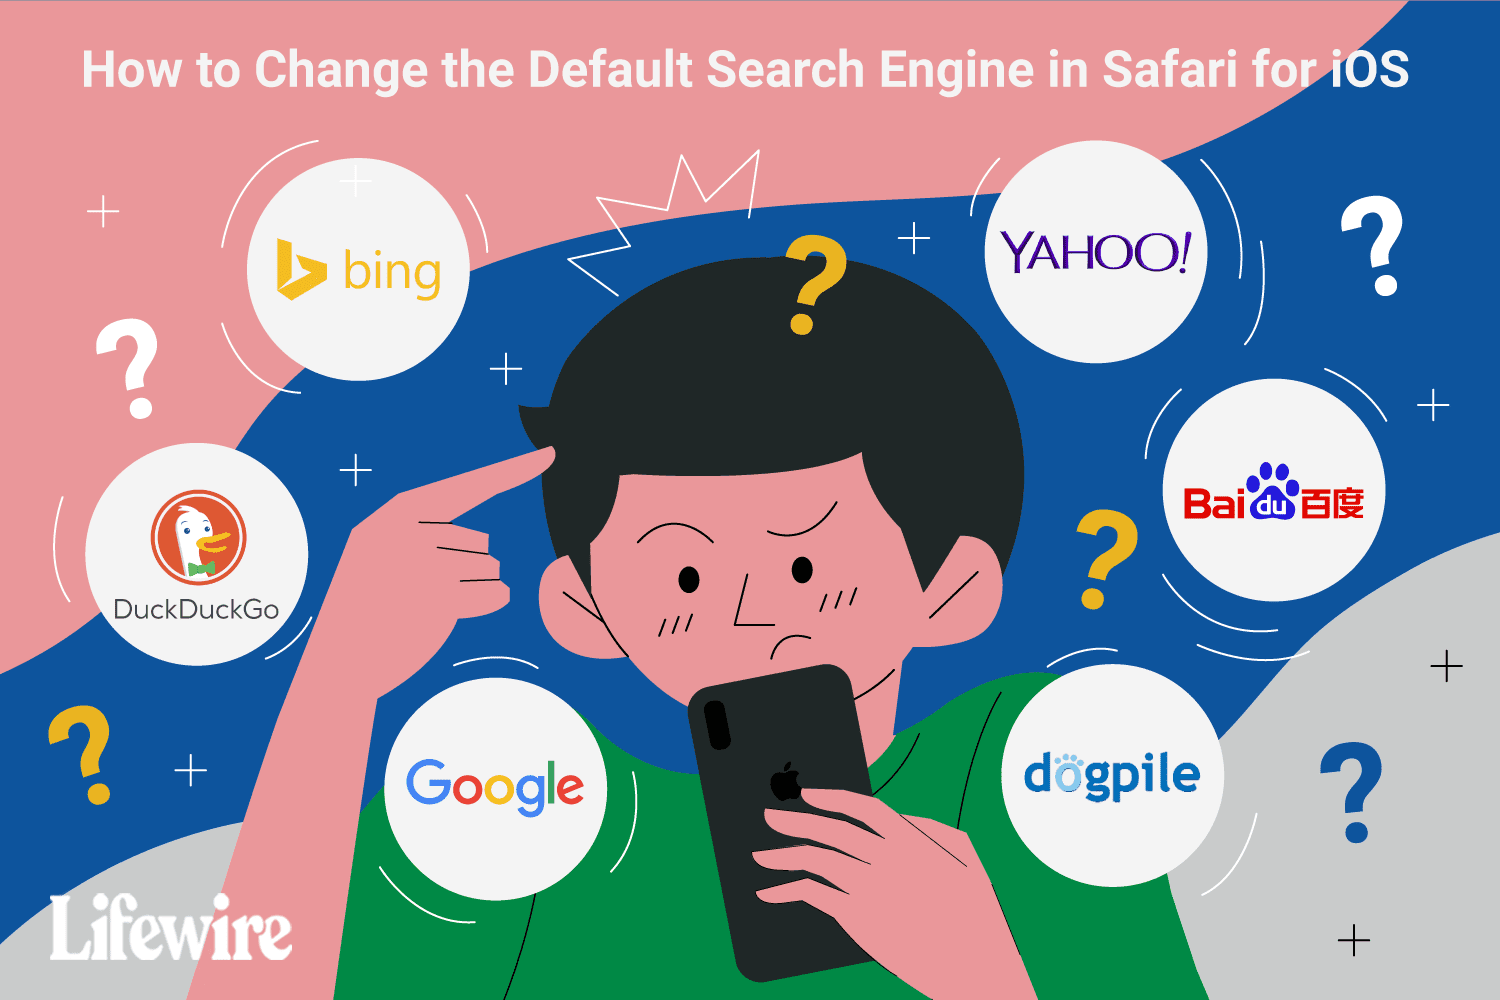 Find Out How to Change the Safari Default Search Engine in iOS